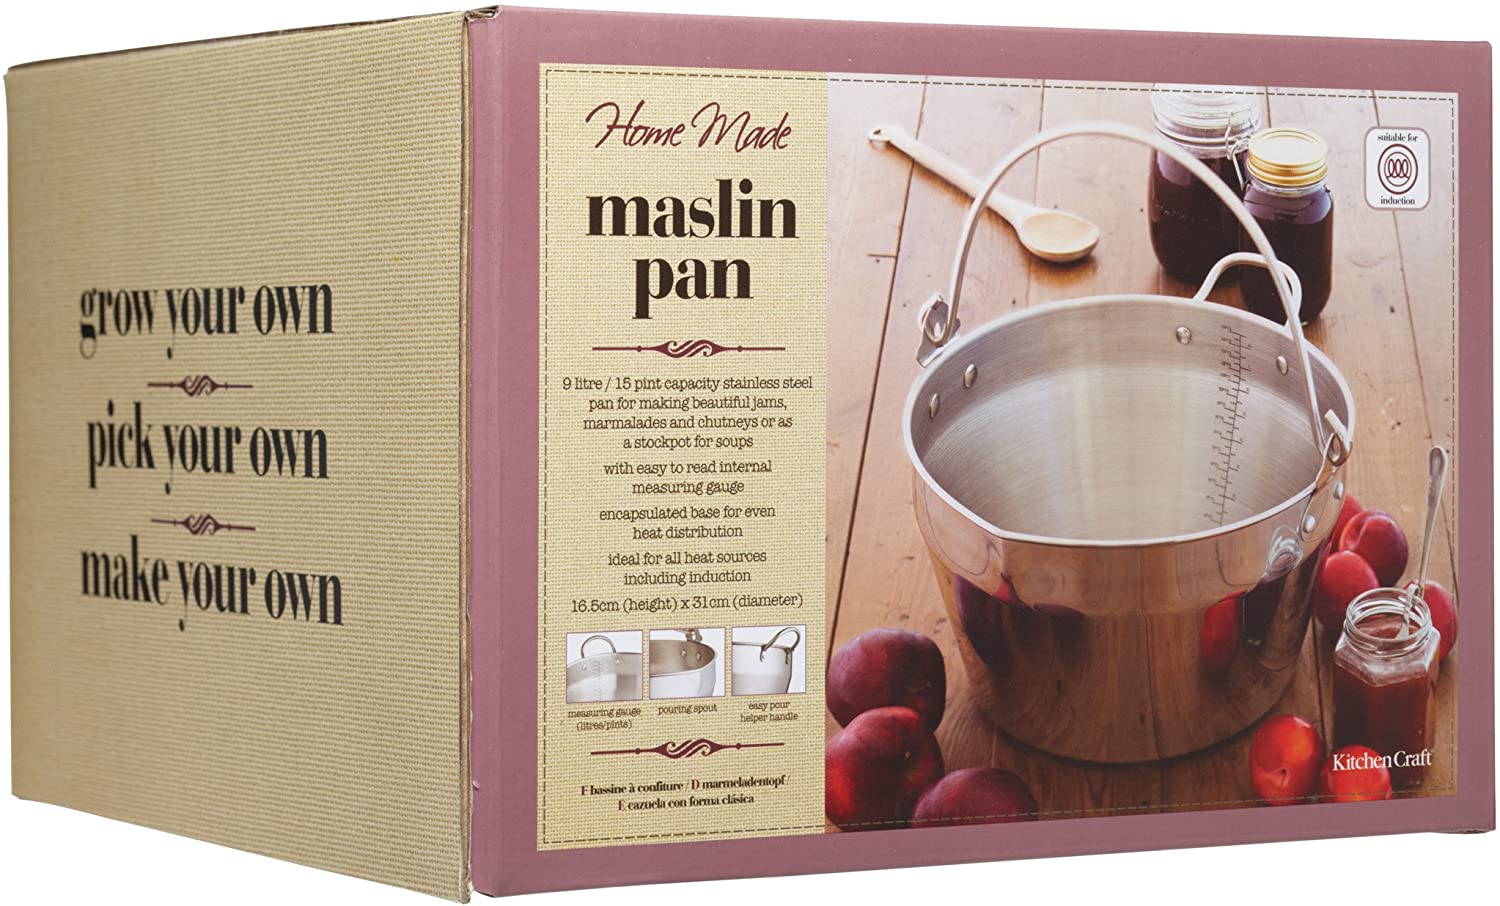 KitchenCraft Home Made Maslin/Jam Pan for Induction Hob with Recipe in Gift Box, Stainless Steel, 9 Litre